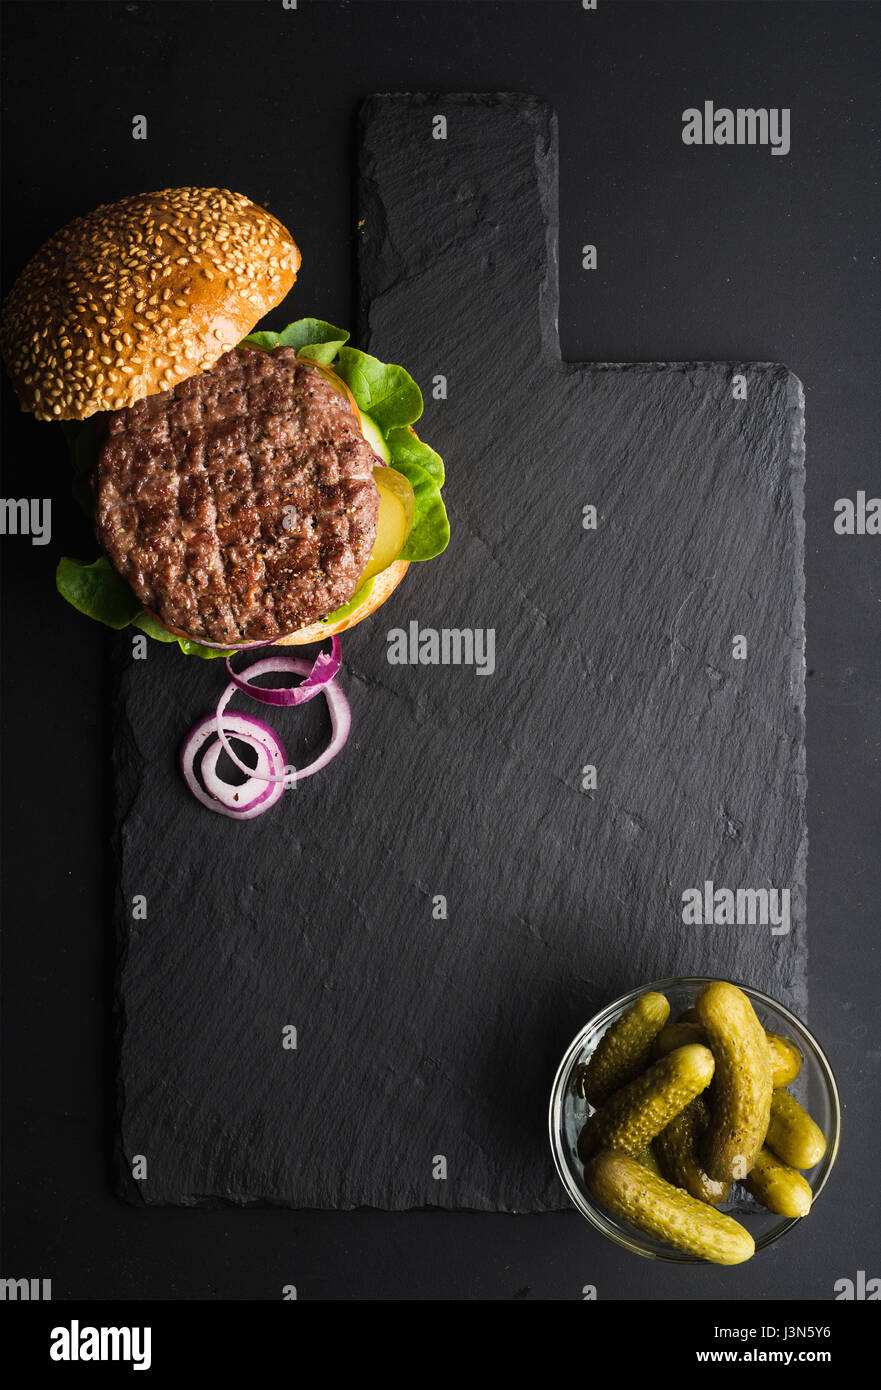 Fresh homemade burger on dark slate stone board, pickles and sliced onion over black background.  - Stock Image